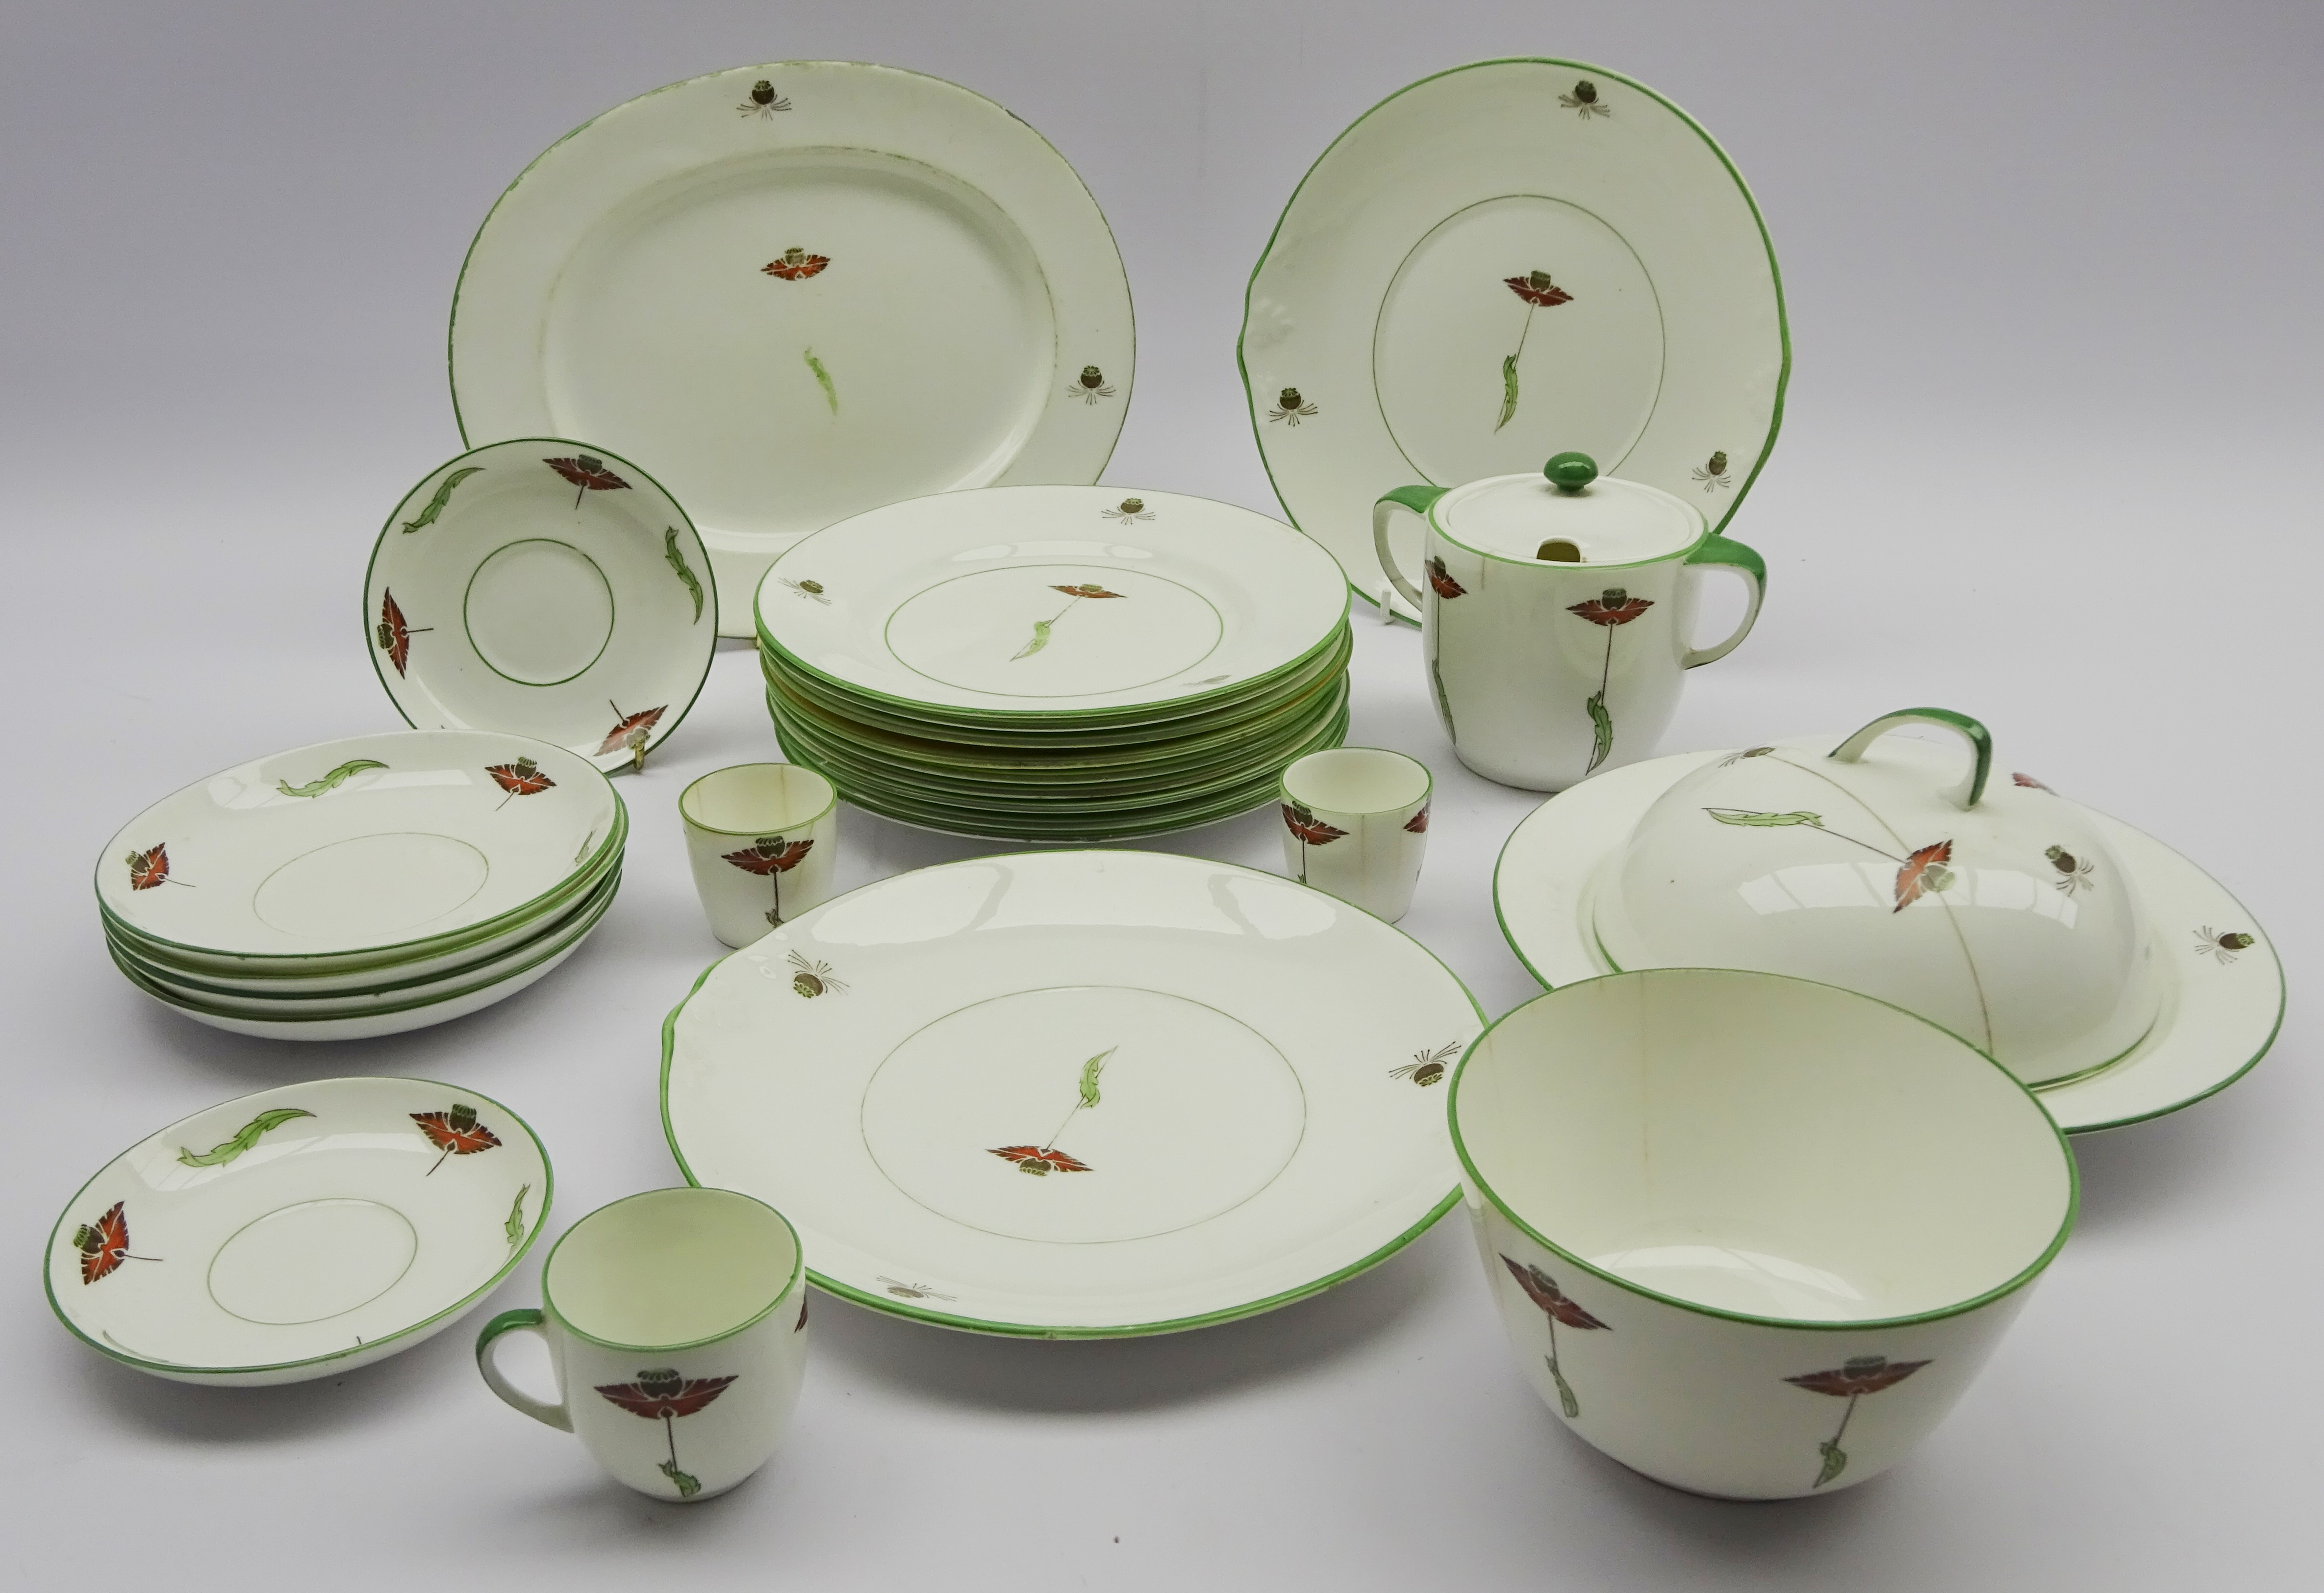 Lot 60 - Art Deco Foley Art China Peacock Pottery tableware (24) Condition Report & Further